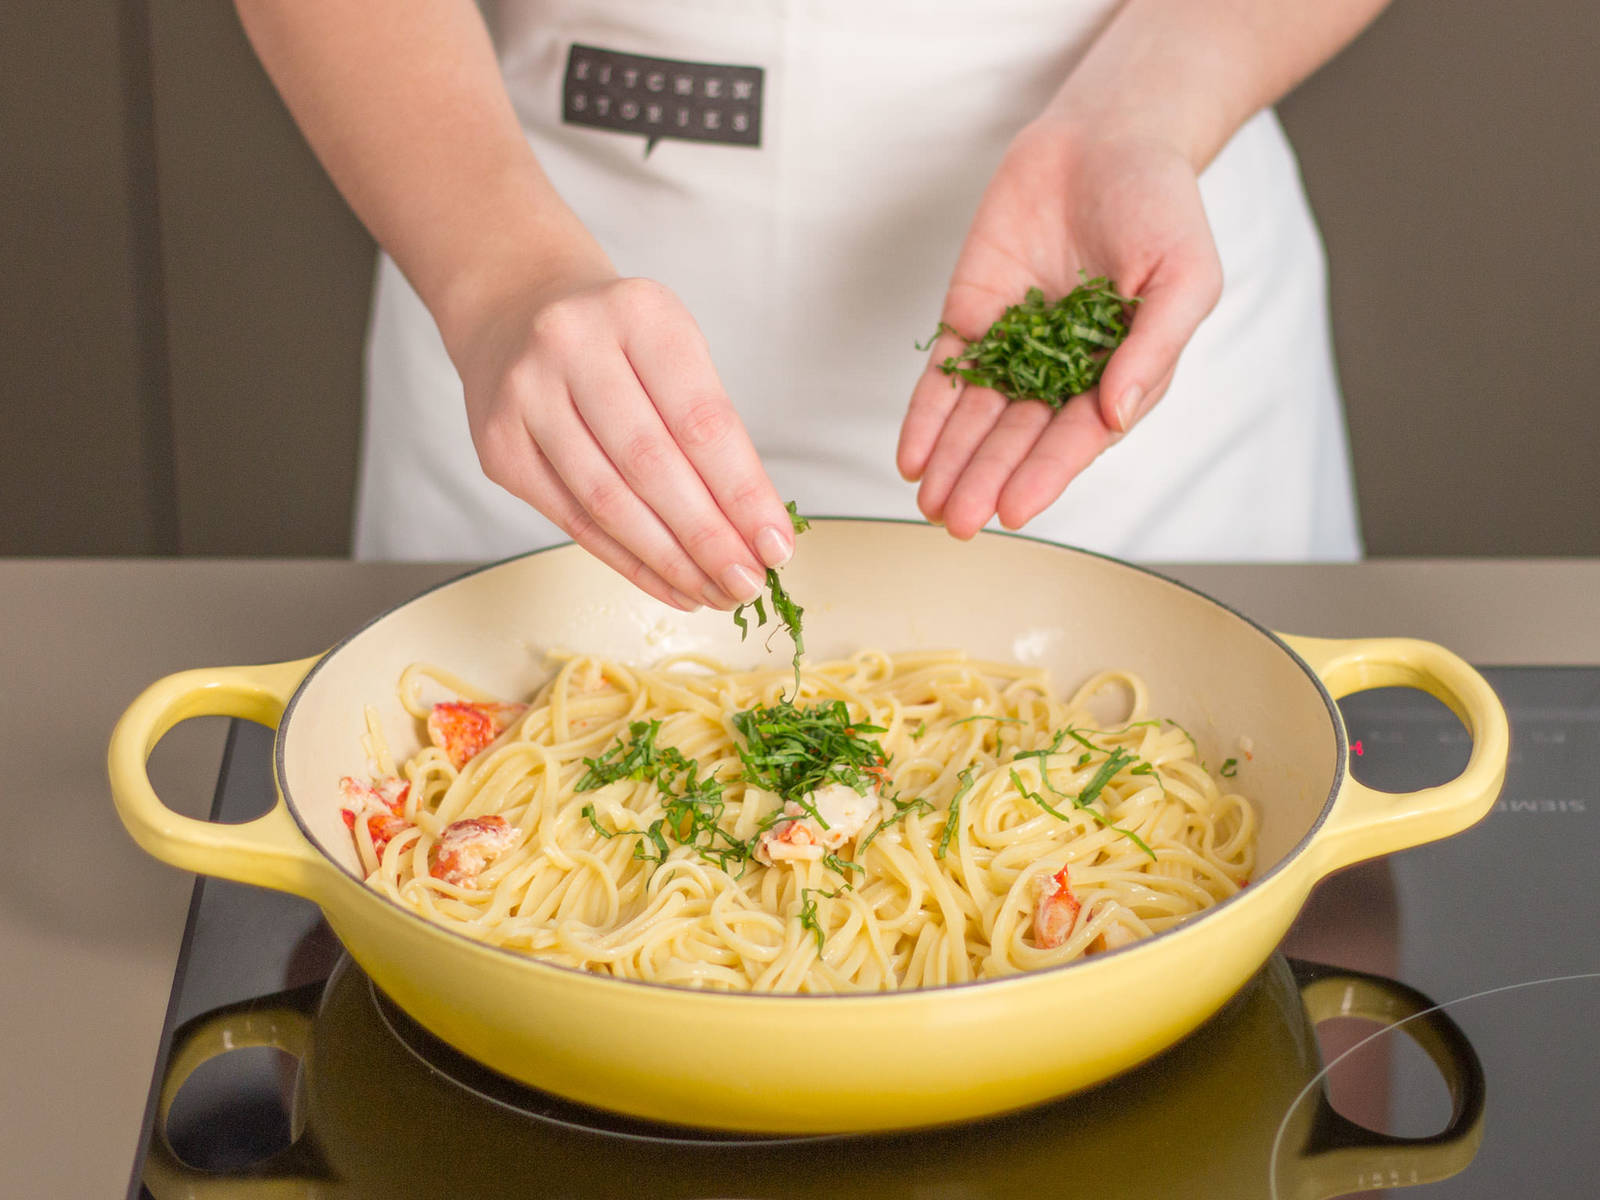 Add cooked pasta, a bit of pasta water, garlic, lemon juice, and basil to the lobster and stir to thoroughly combine. Season to taste with salt and pepper. Transfer to a plate for serving. Enjoy!